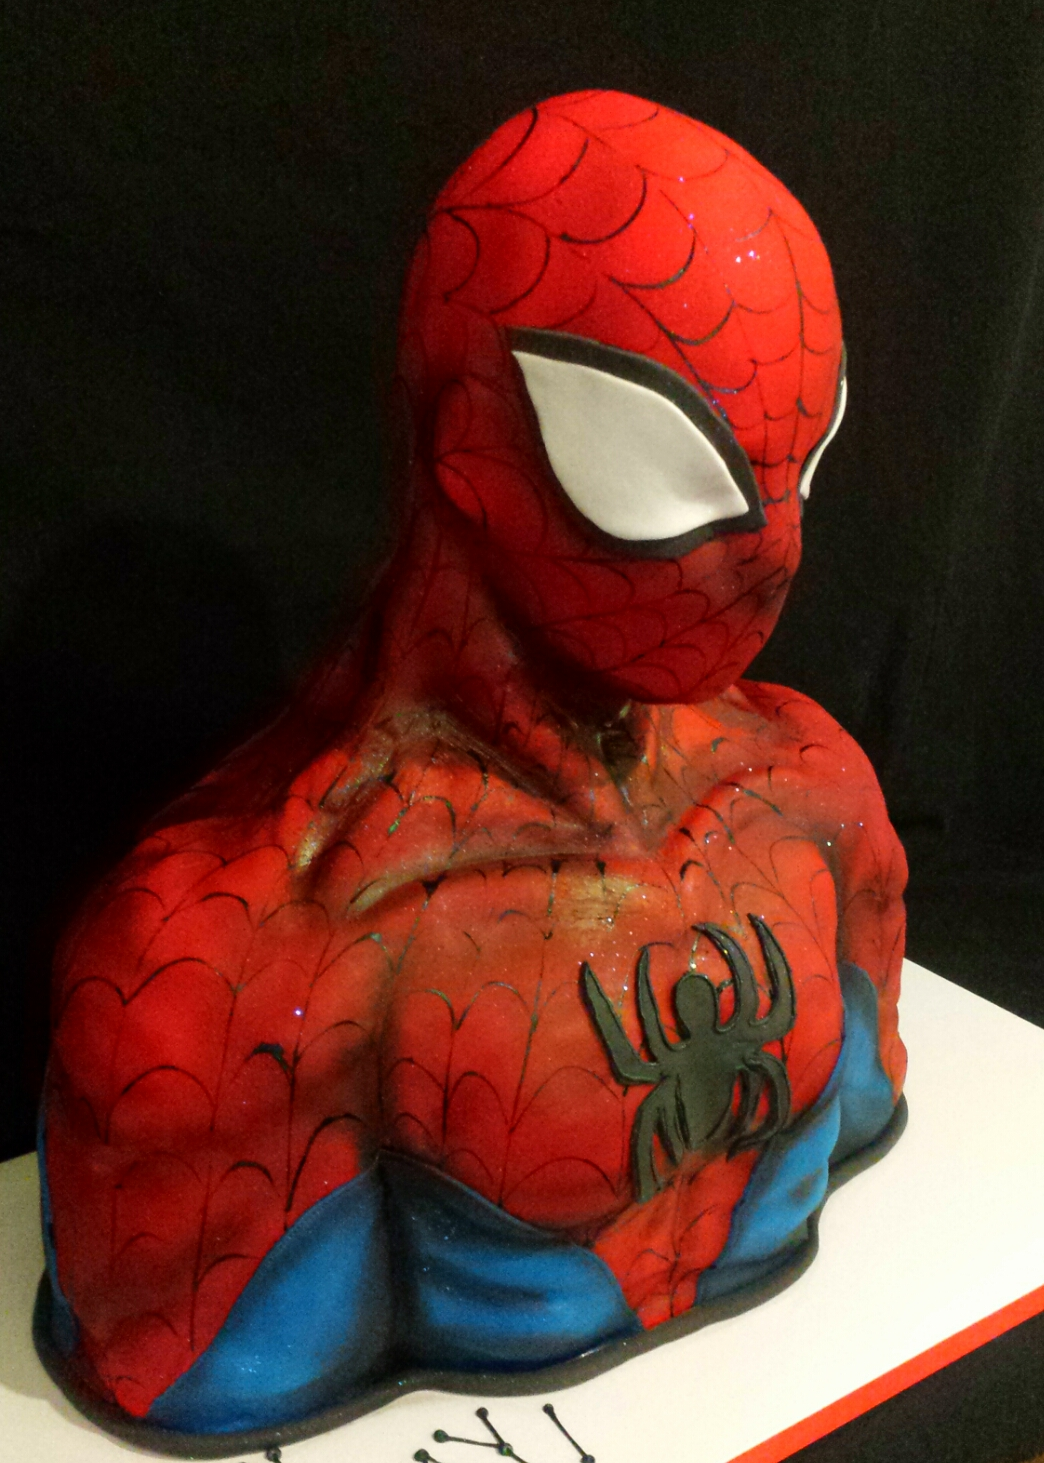 Spiderman bust cake